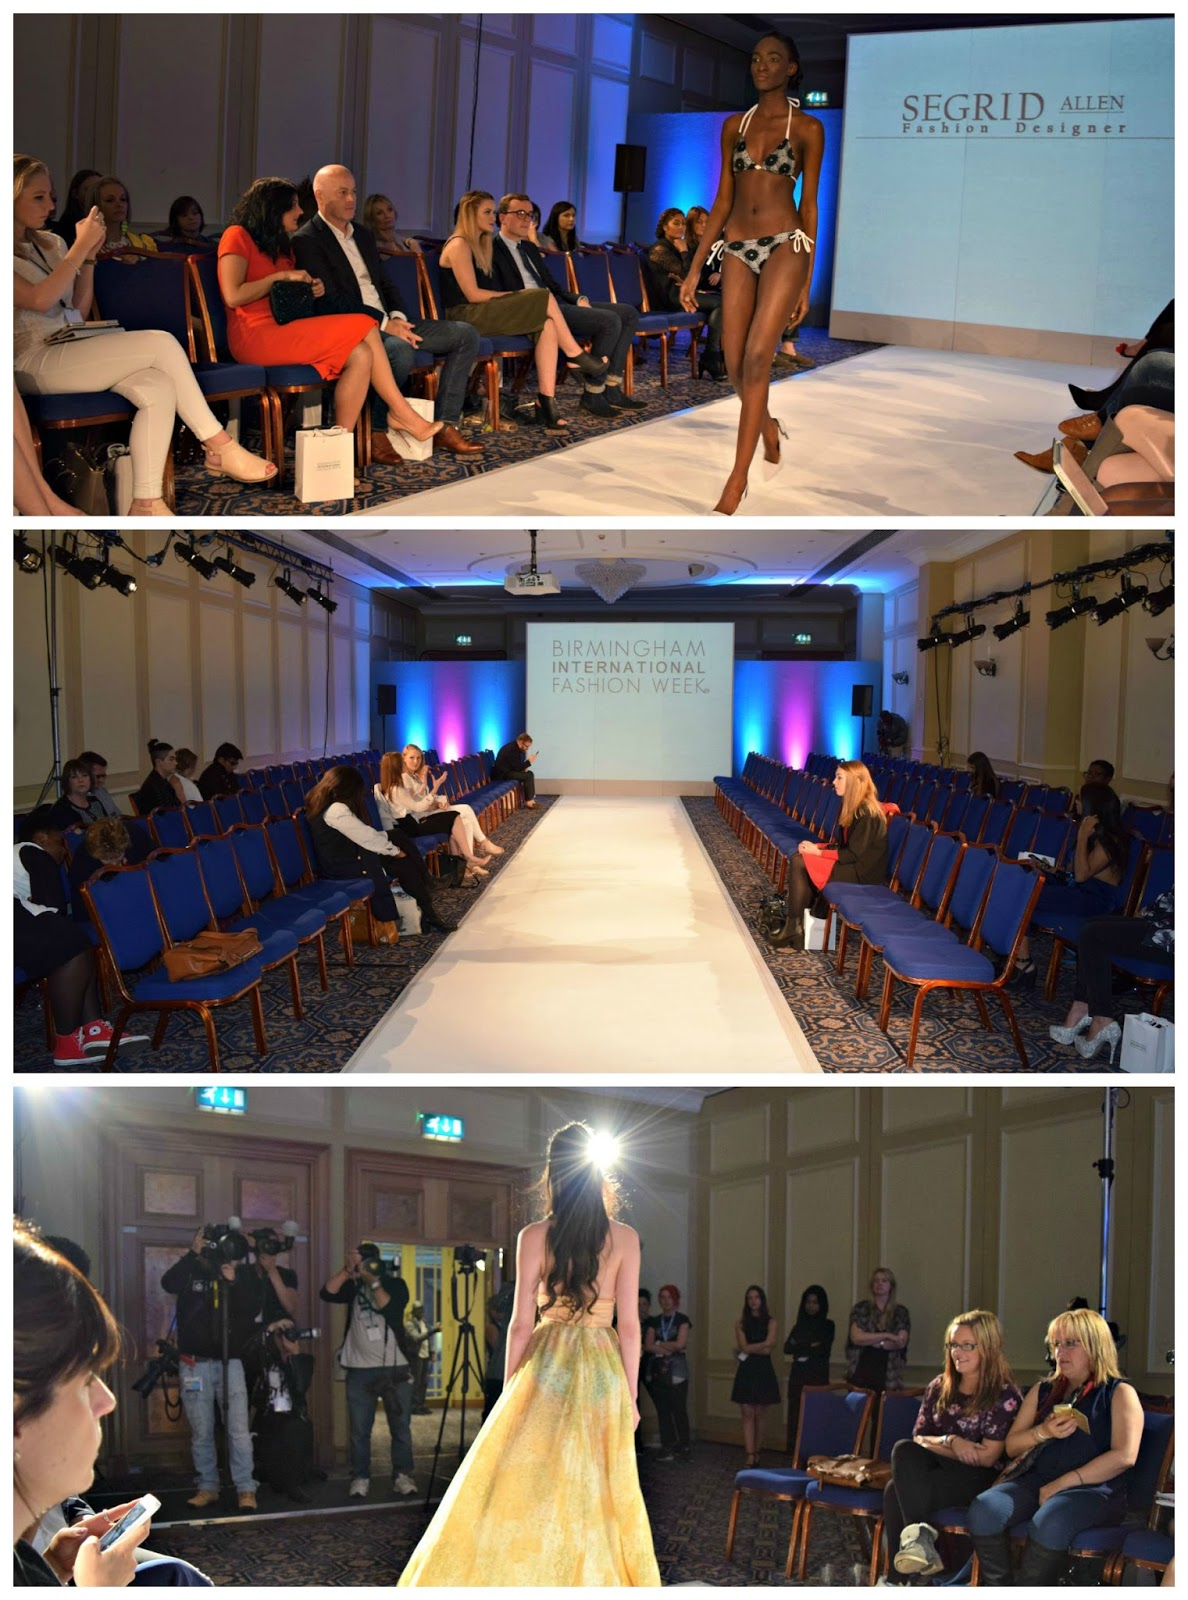 Birmingham international Fashion Week 2015